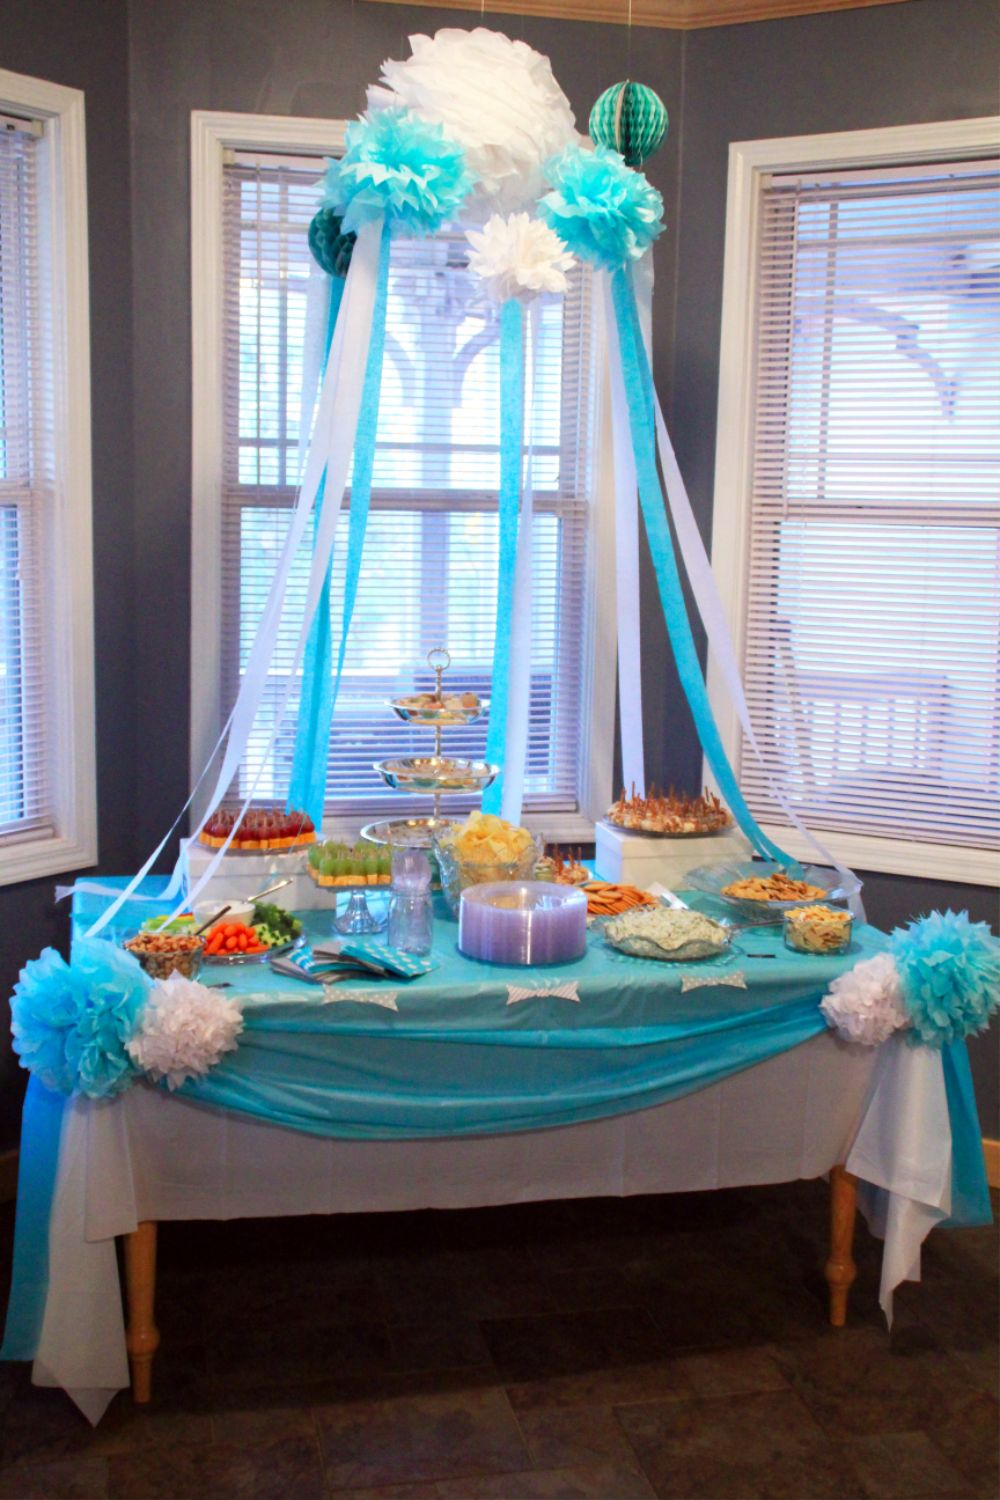 Baby shower decoration ideas southern couture for Baby shower at home decorations